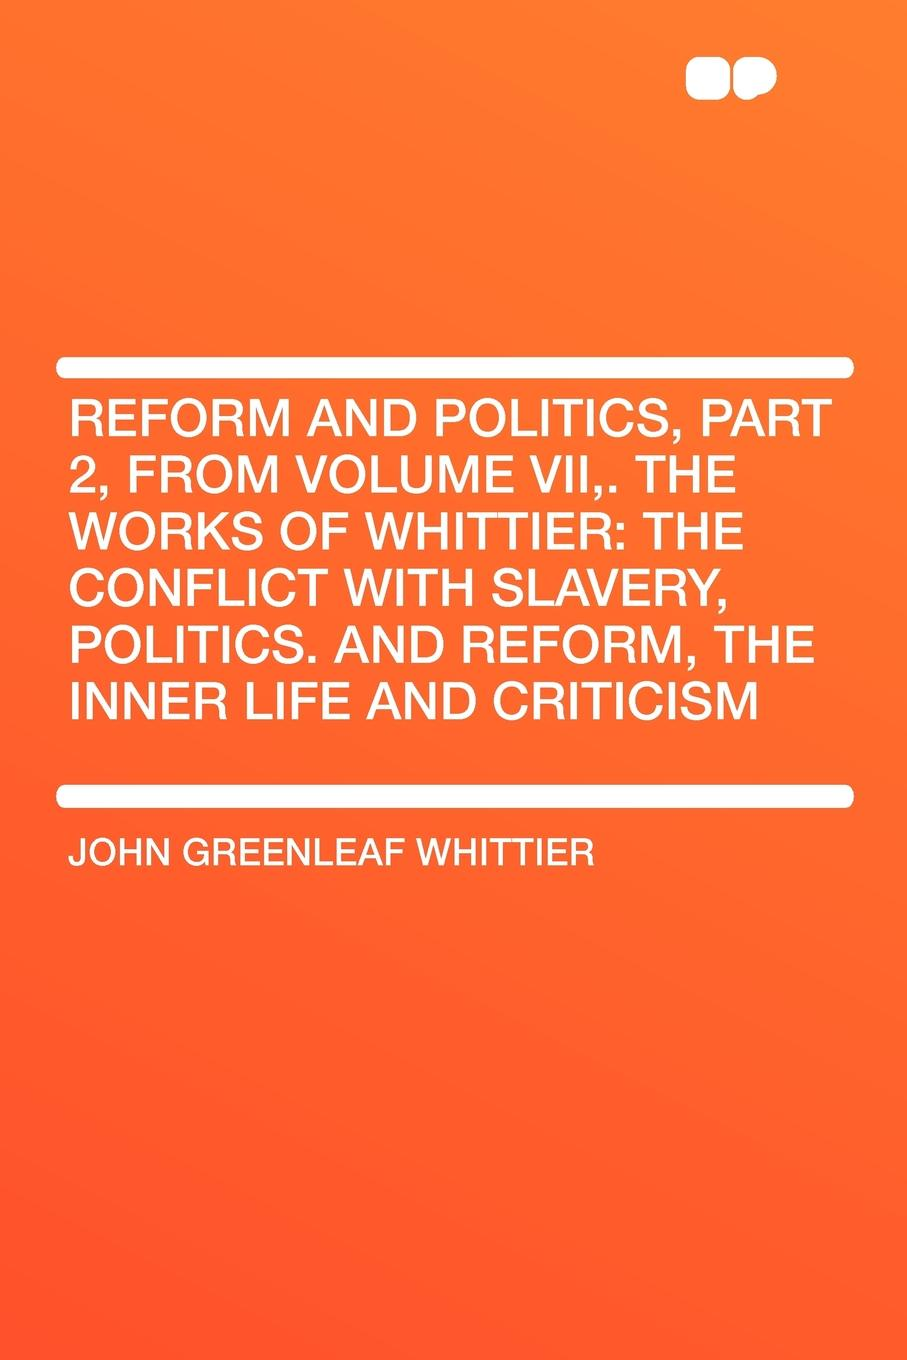 John Greenleaf Whittier Reform and Politics, Part 2, from Volume VII,. The Works of Whittier. the Conflict with Slavery, Politics. and Reform, the Inner Life and Criticism john brademas the politics of education conflict and consensus on capitol hill